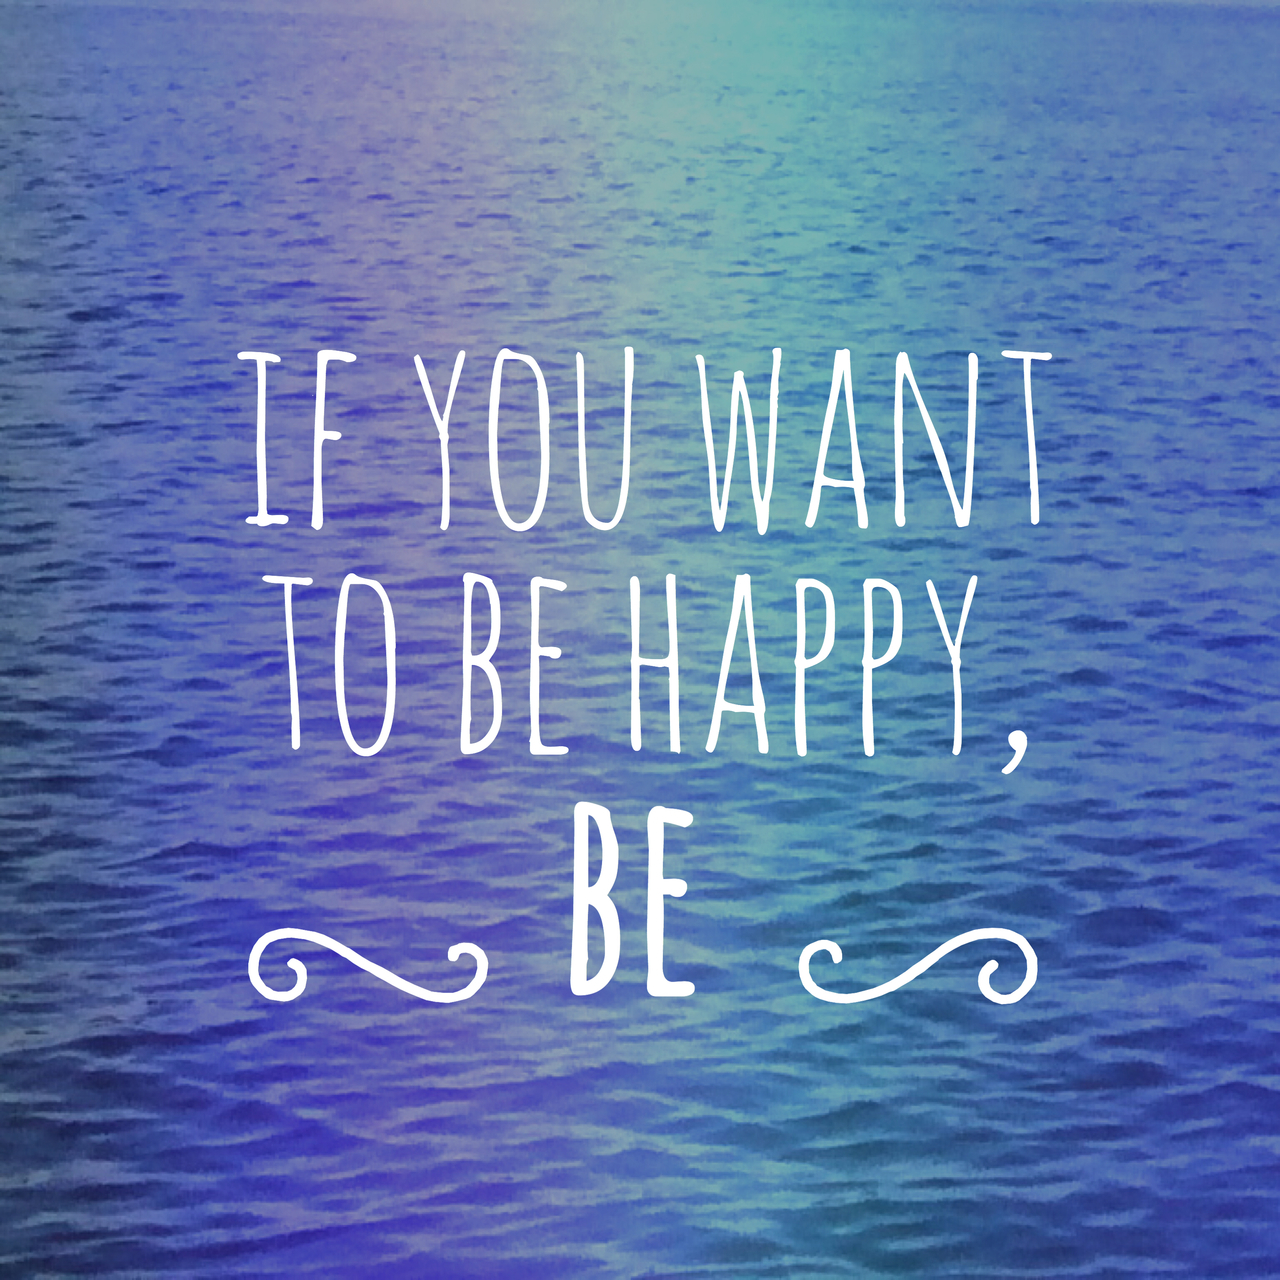 If You Want To Be Happy Be Leo Tolstoy